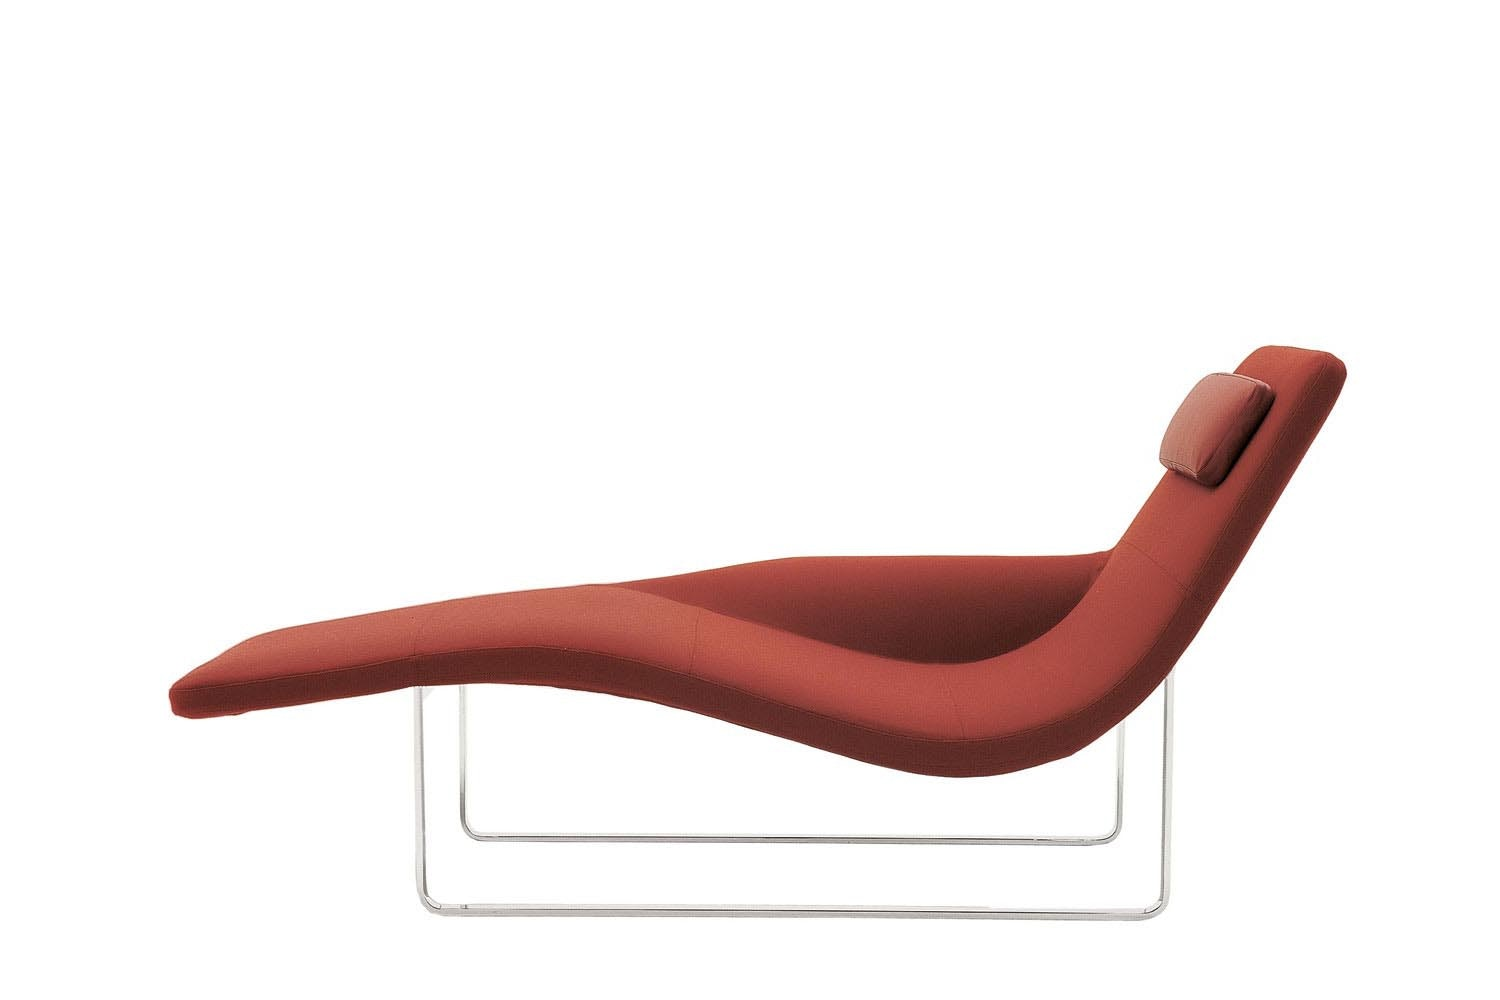 Landscape '05 Chaise Longue by Jeffrey Bernett for B&B Italia